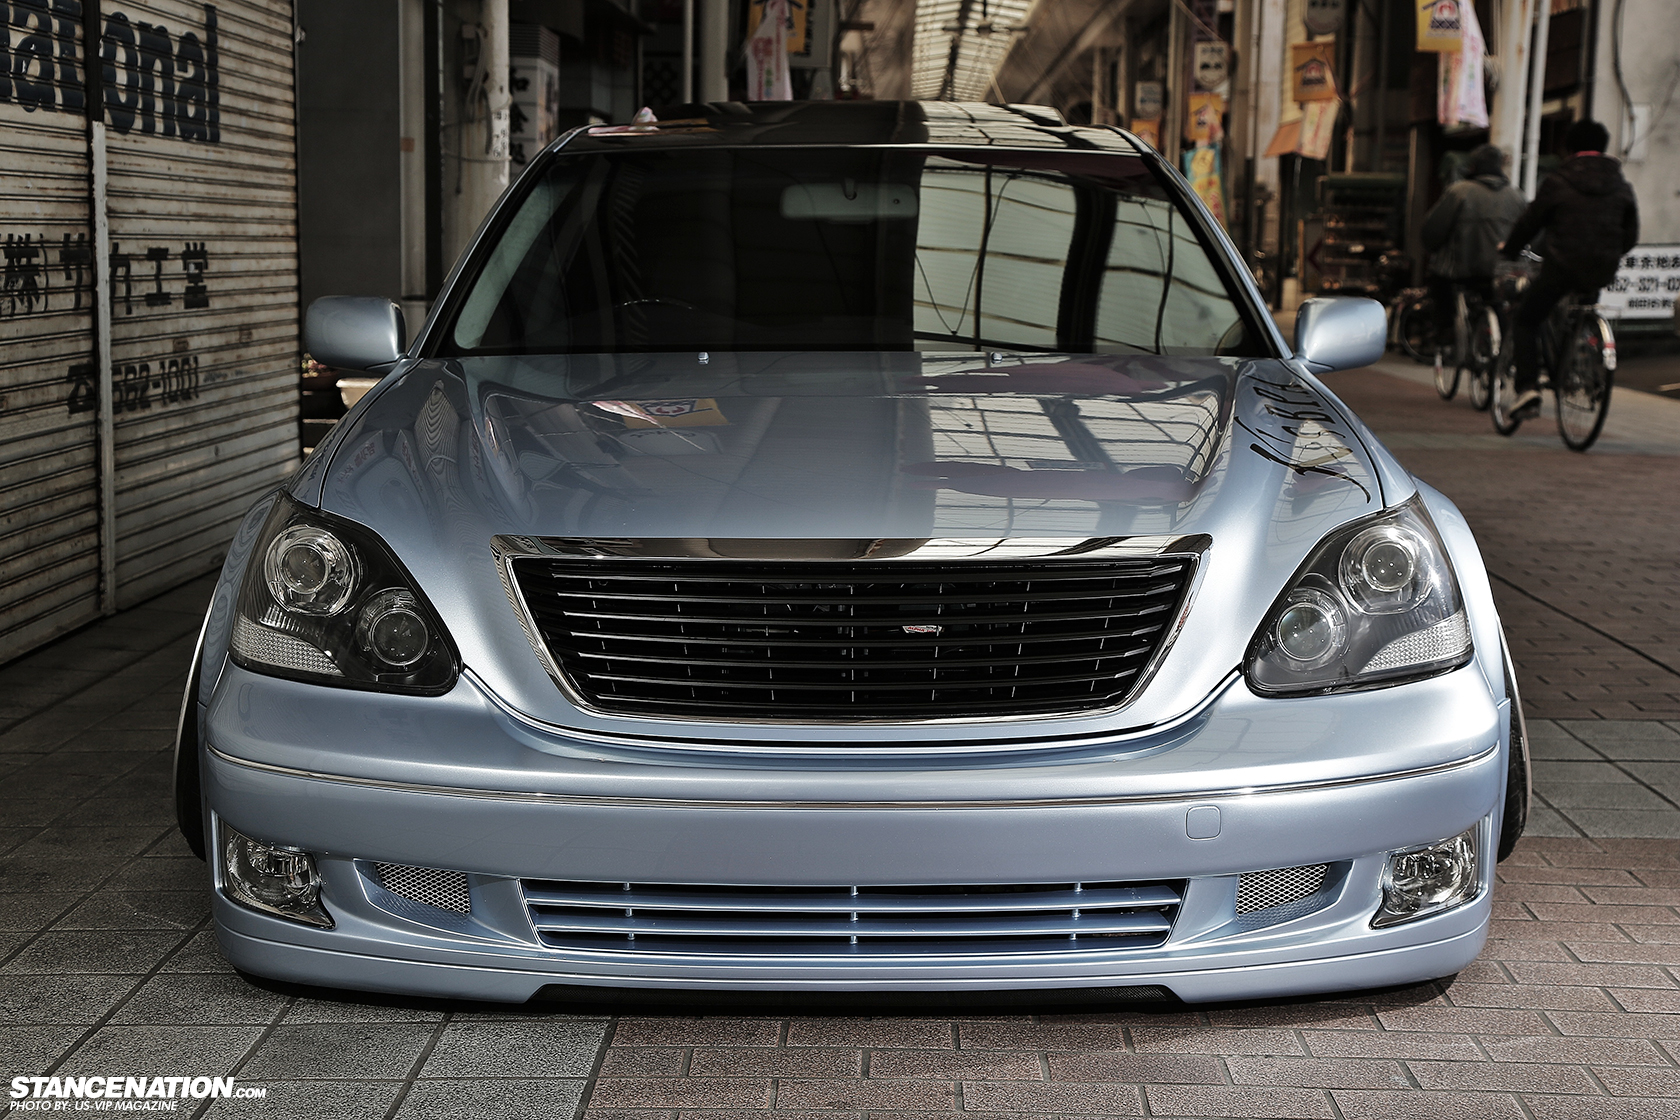 Vip Lexus Ls Barely Touches The Ground Photo Gallery